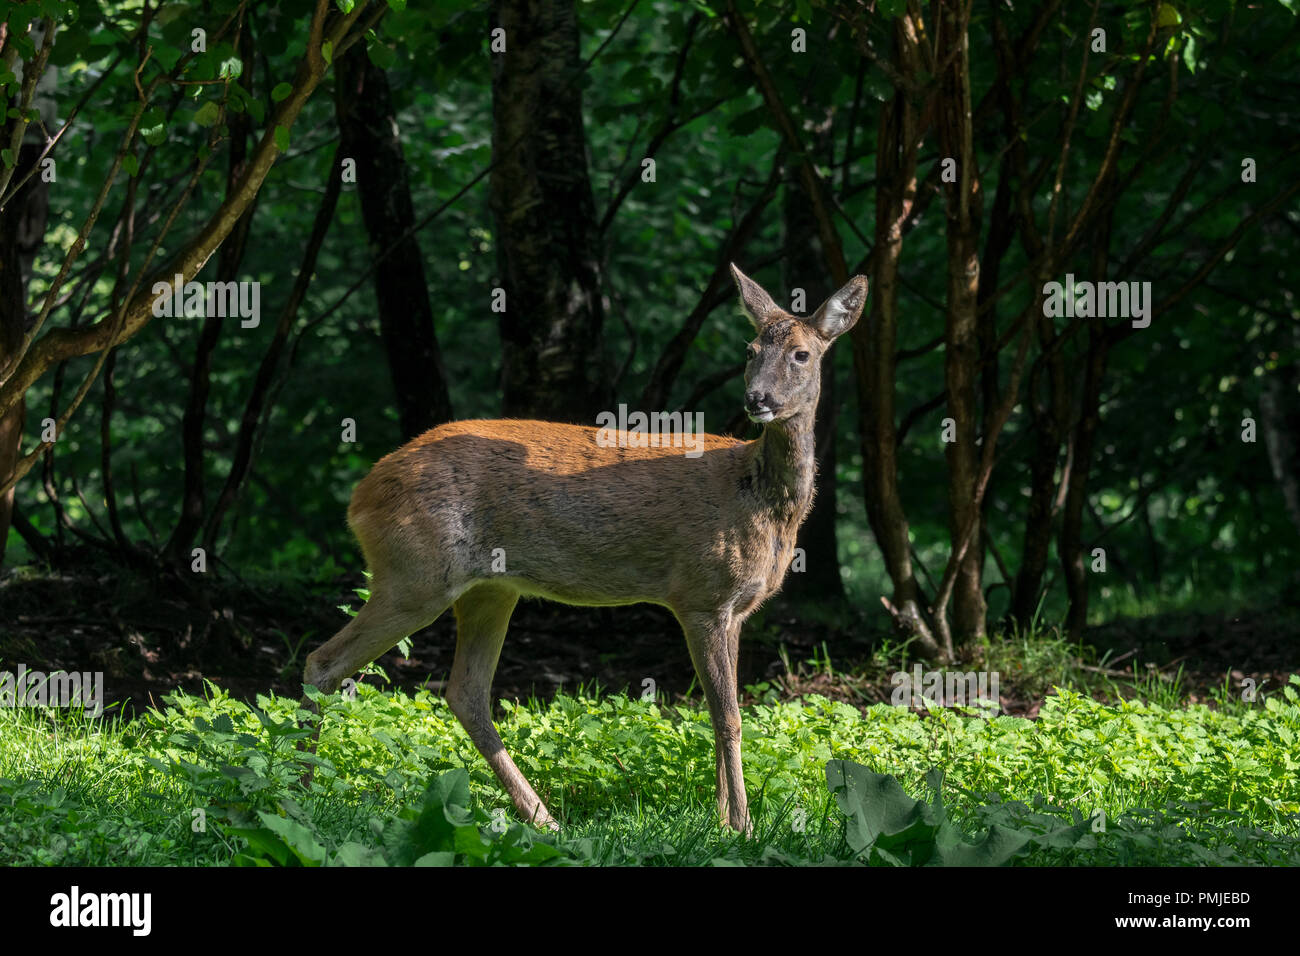 European roe deer (Capreolus capreolus) female / doe hiding in undergrowth / thicket / brushwood of forest in summer Stock Photo